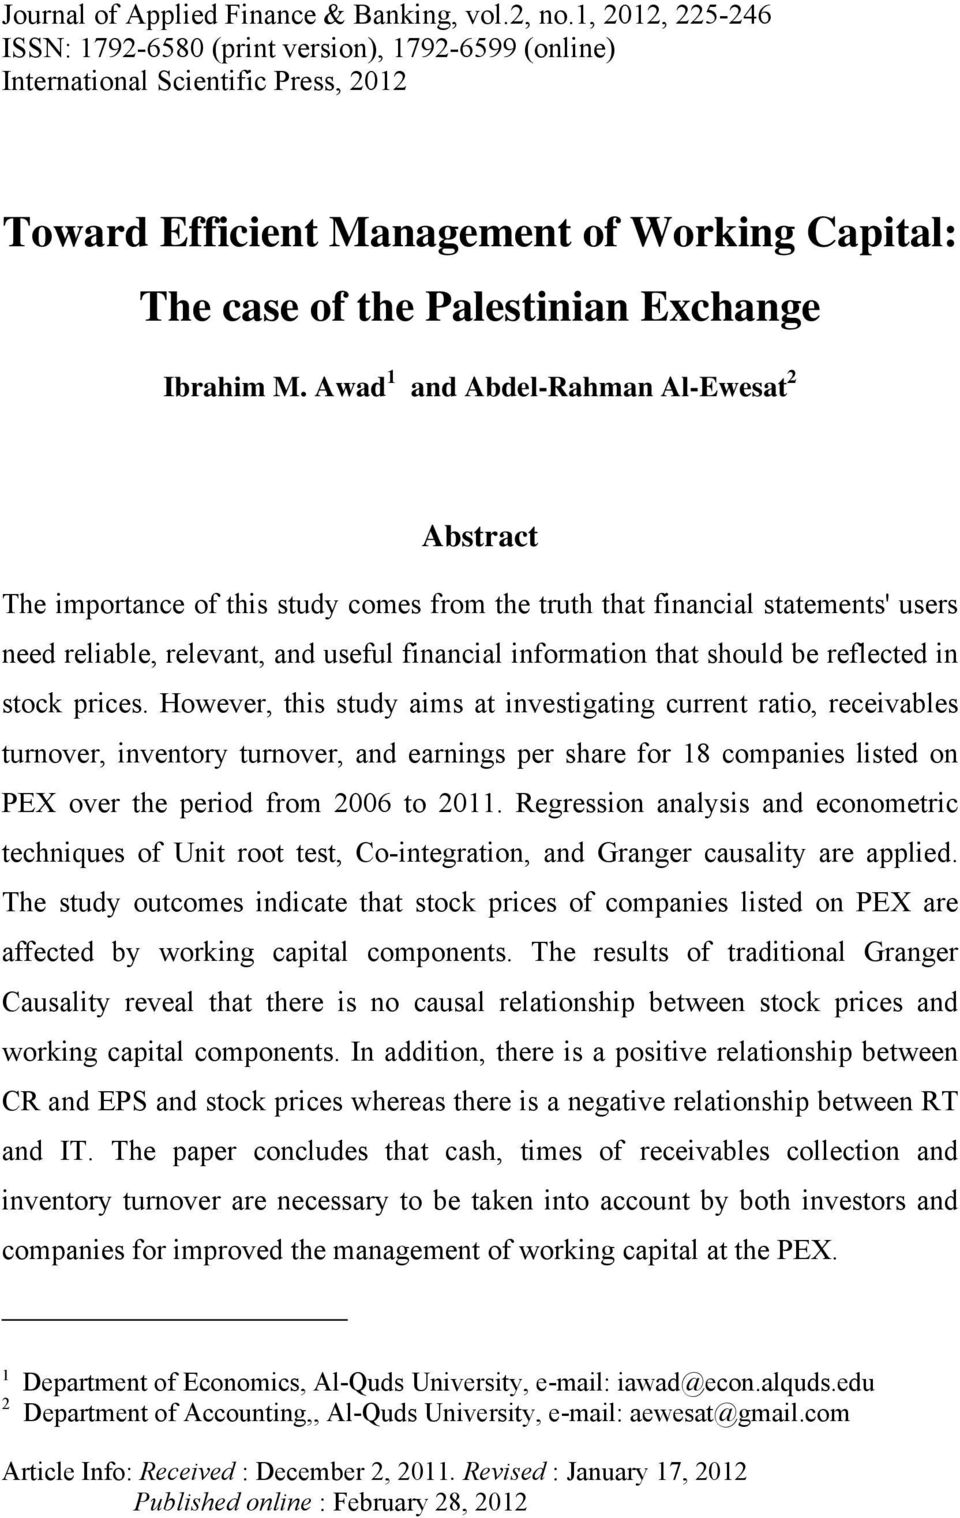 M. Awad 1 and Abdel-Rahman Al-Ewesat 2 Abstract The importance of this study comes from the truth that financial statements' users need reliable, relevant, and useful financial information that